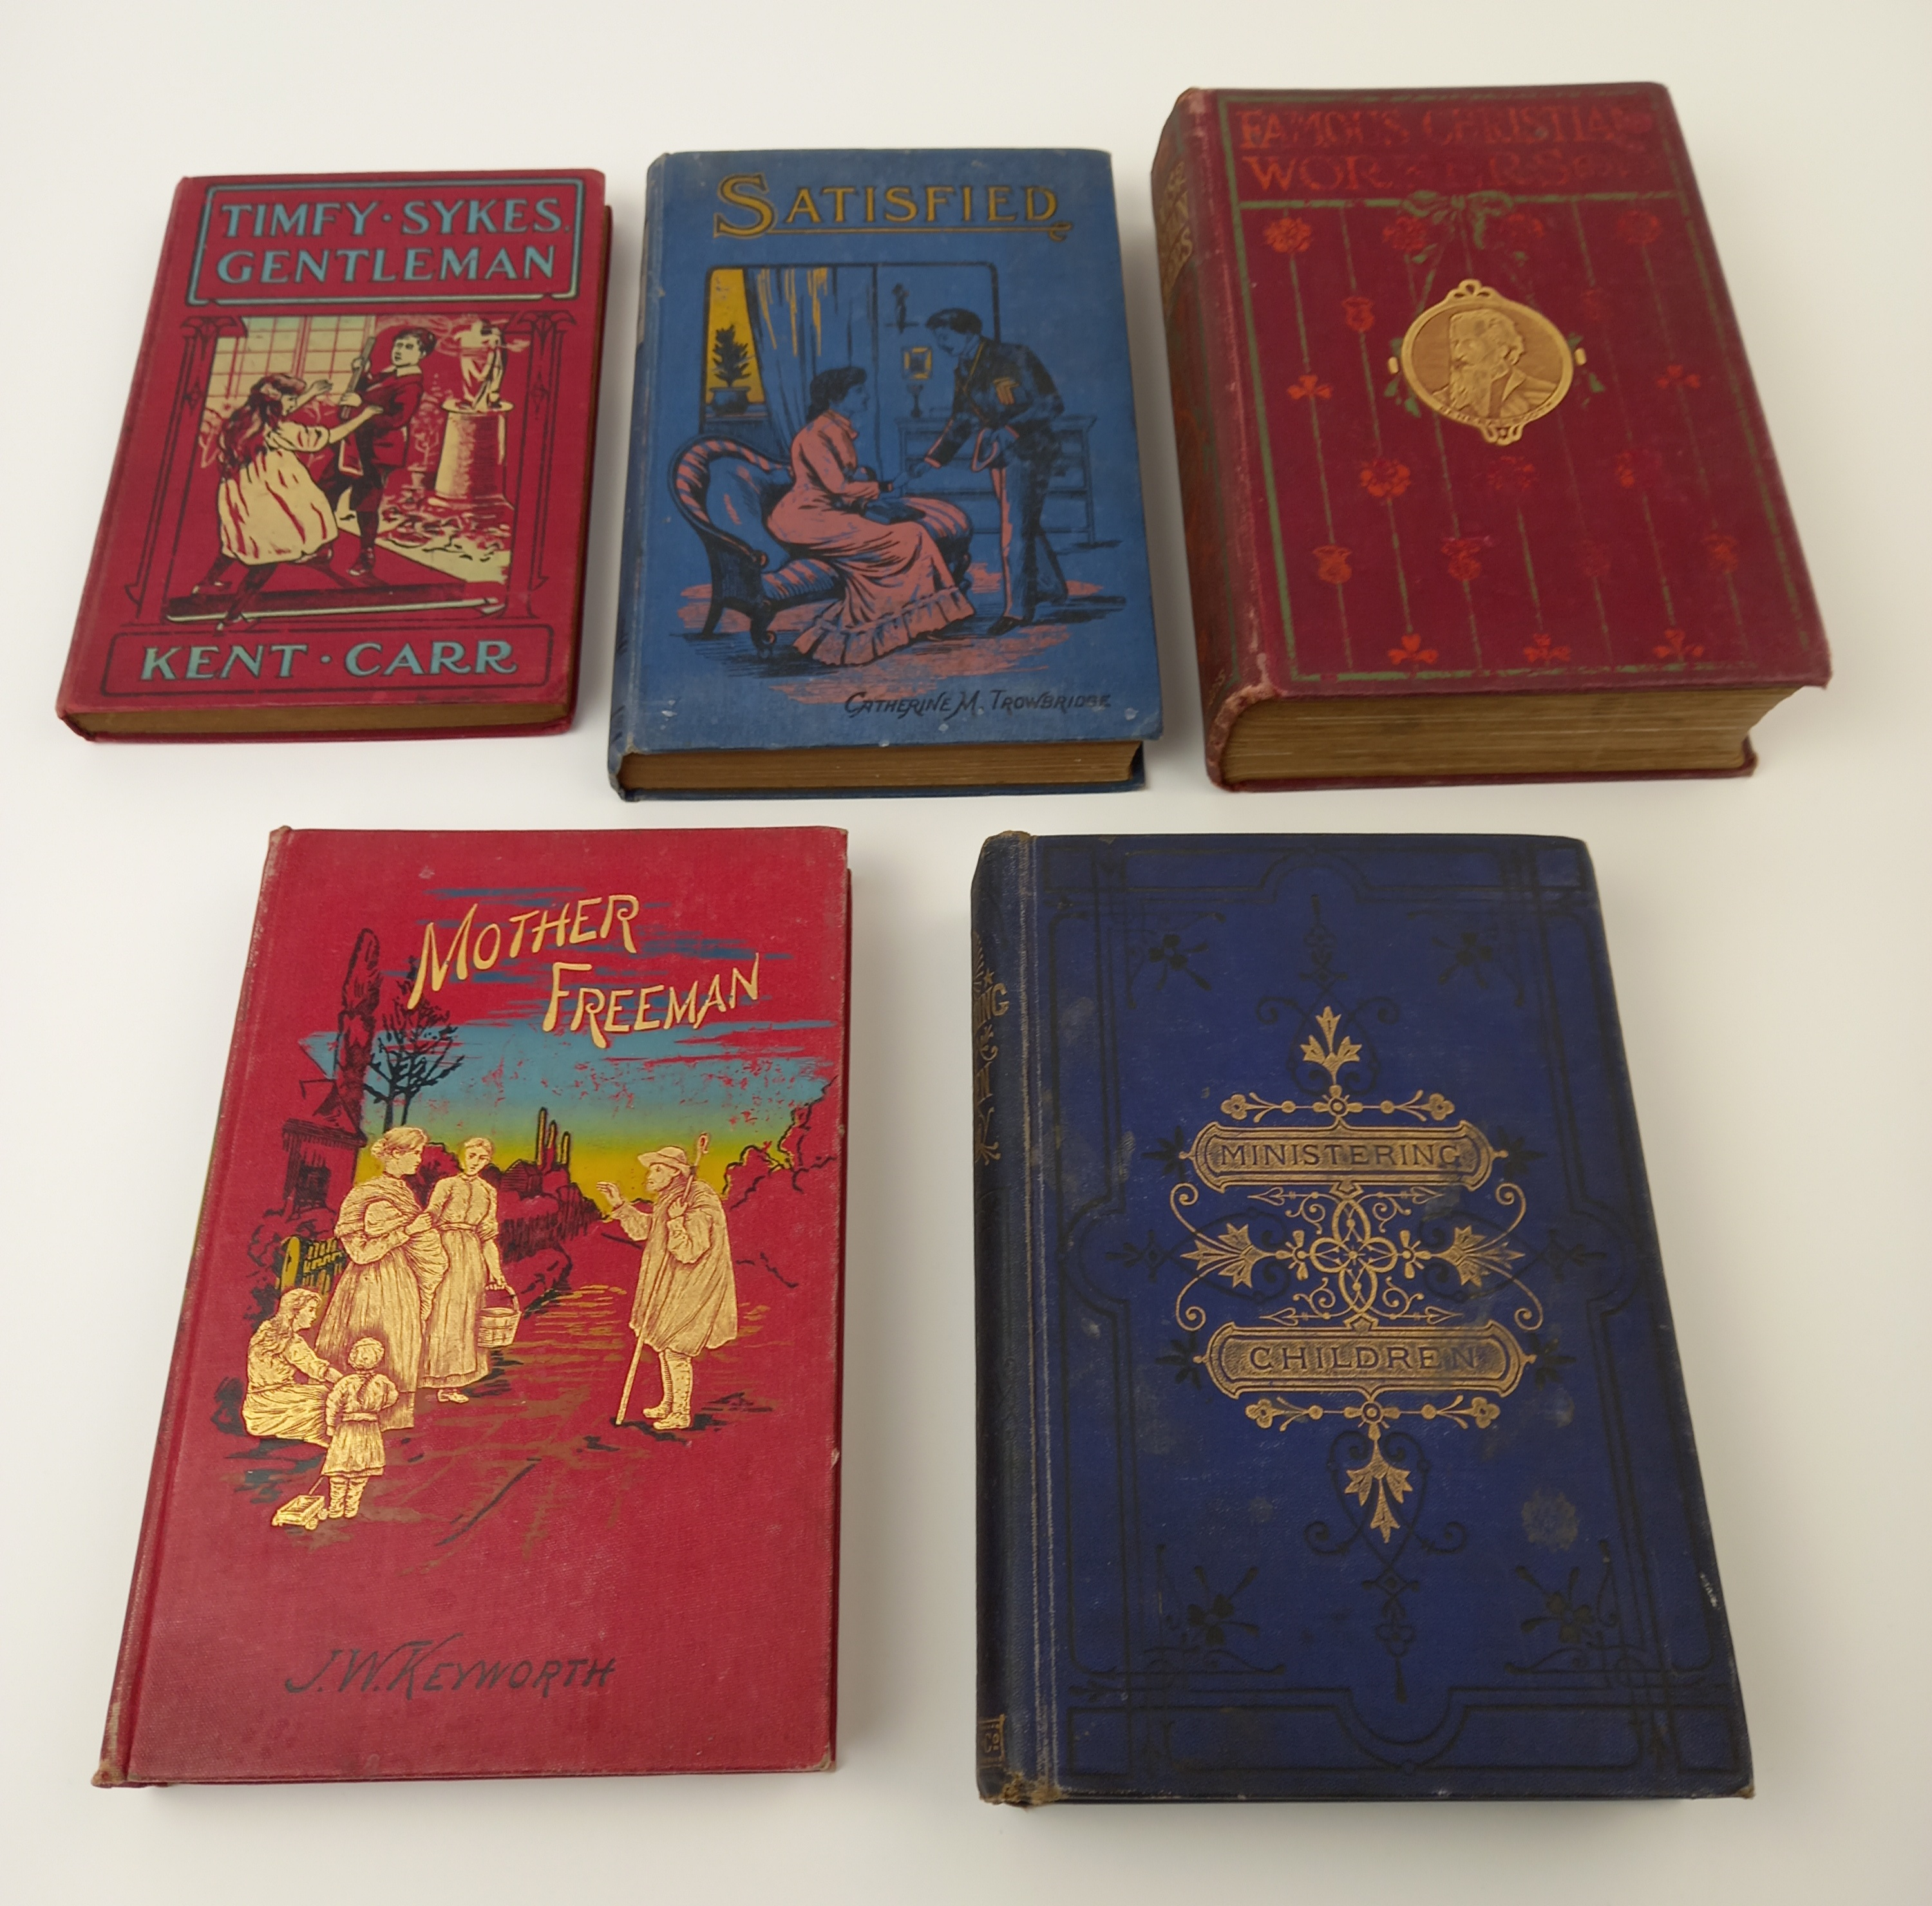 Hazelwood (C) et al, THE PAGEANT, 1897 edition, illustrated red boards, illustrated endpapers, - Image 16 of 16